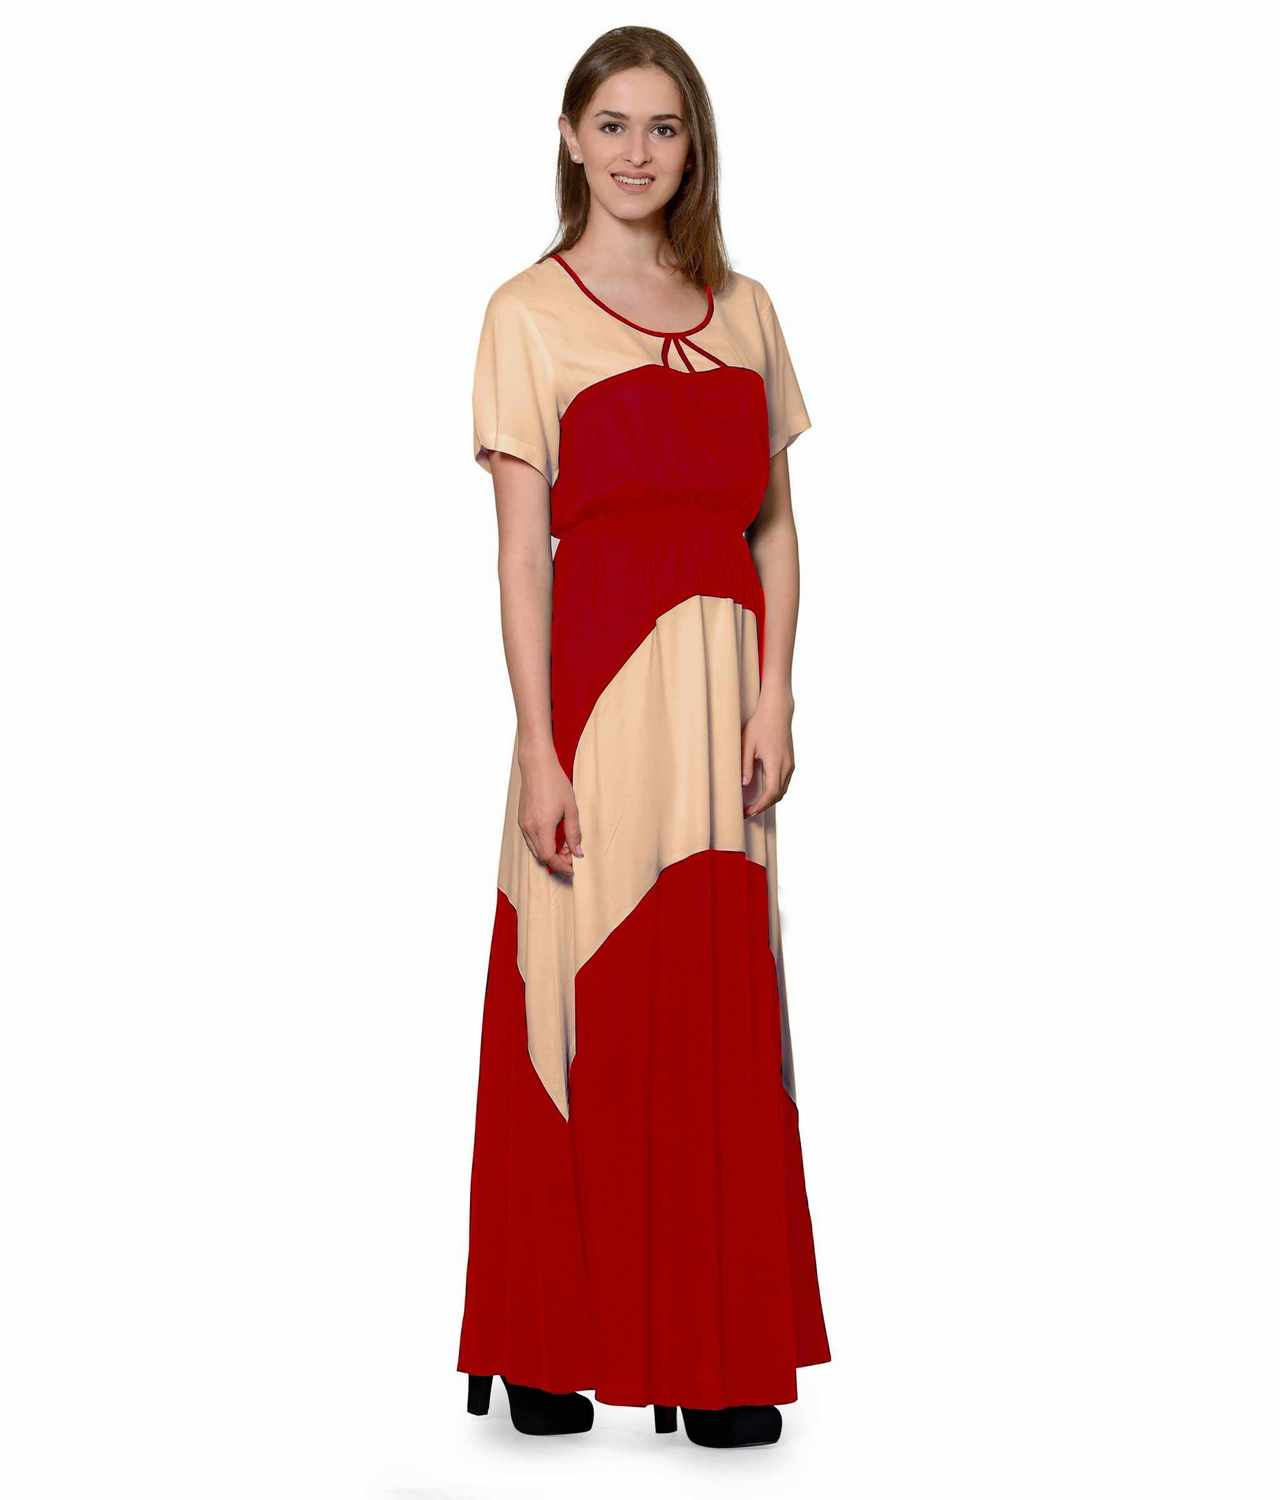 Color Block Slim Fit Maxi Dress Gown in Peach:Red